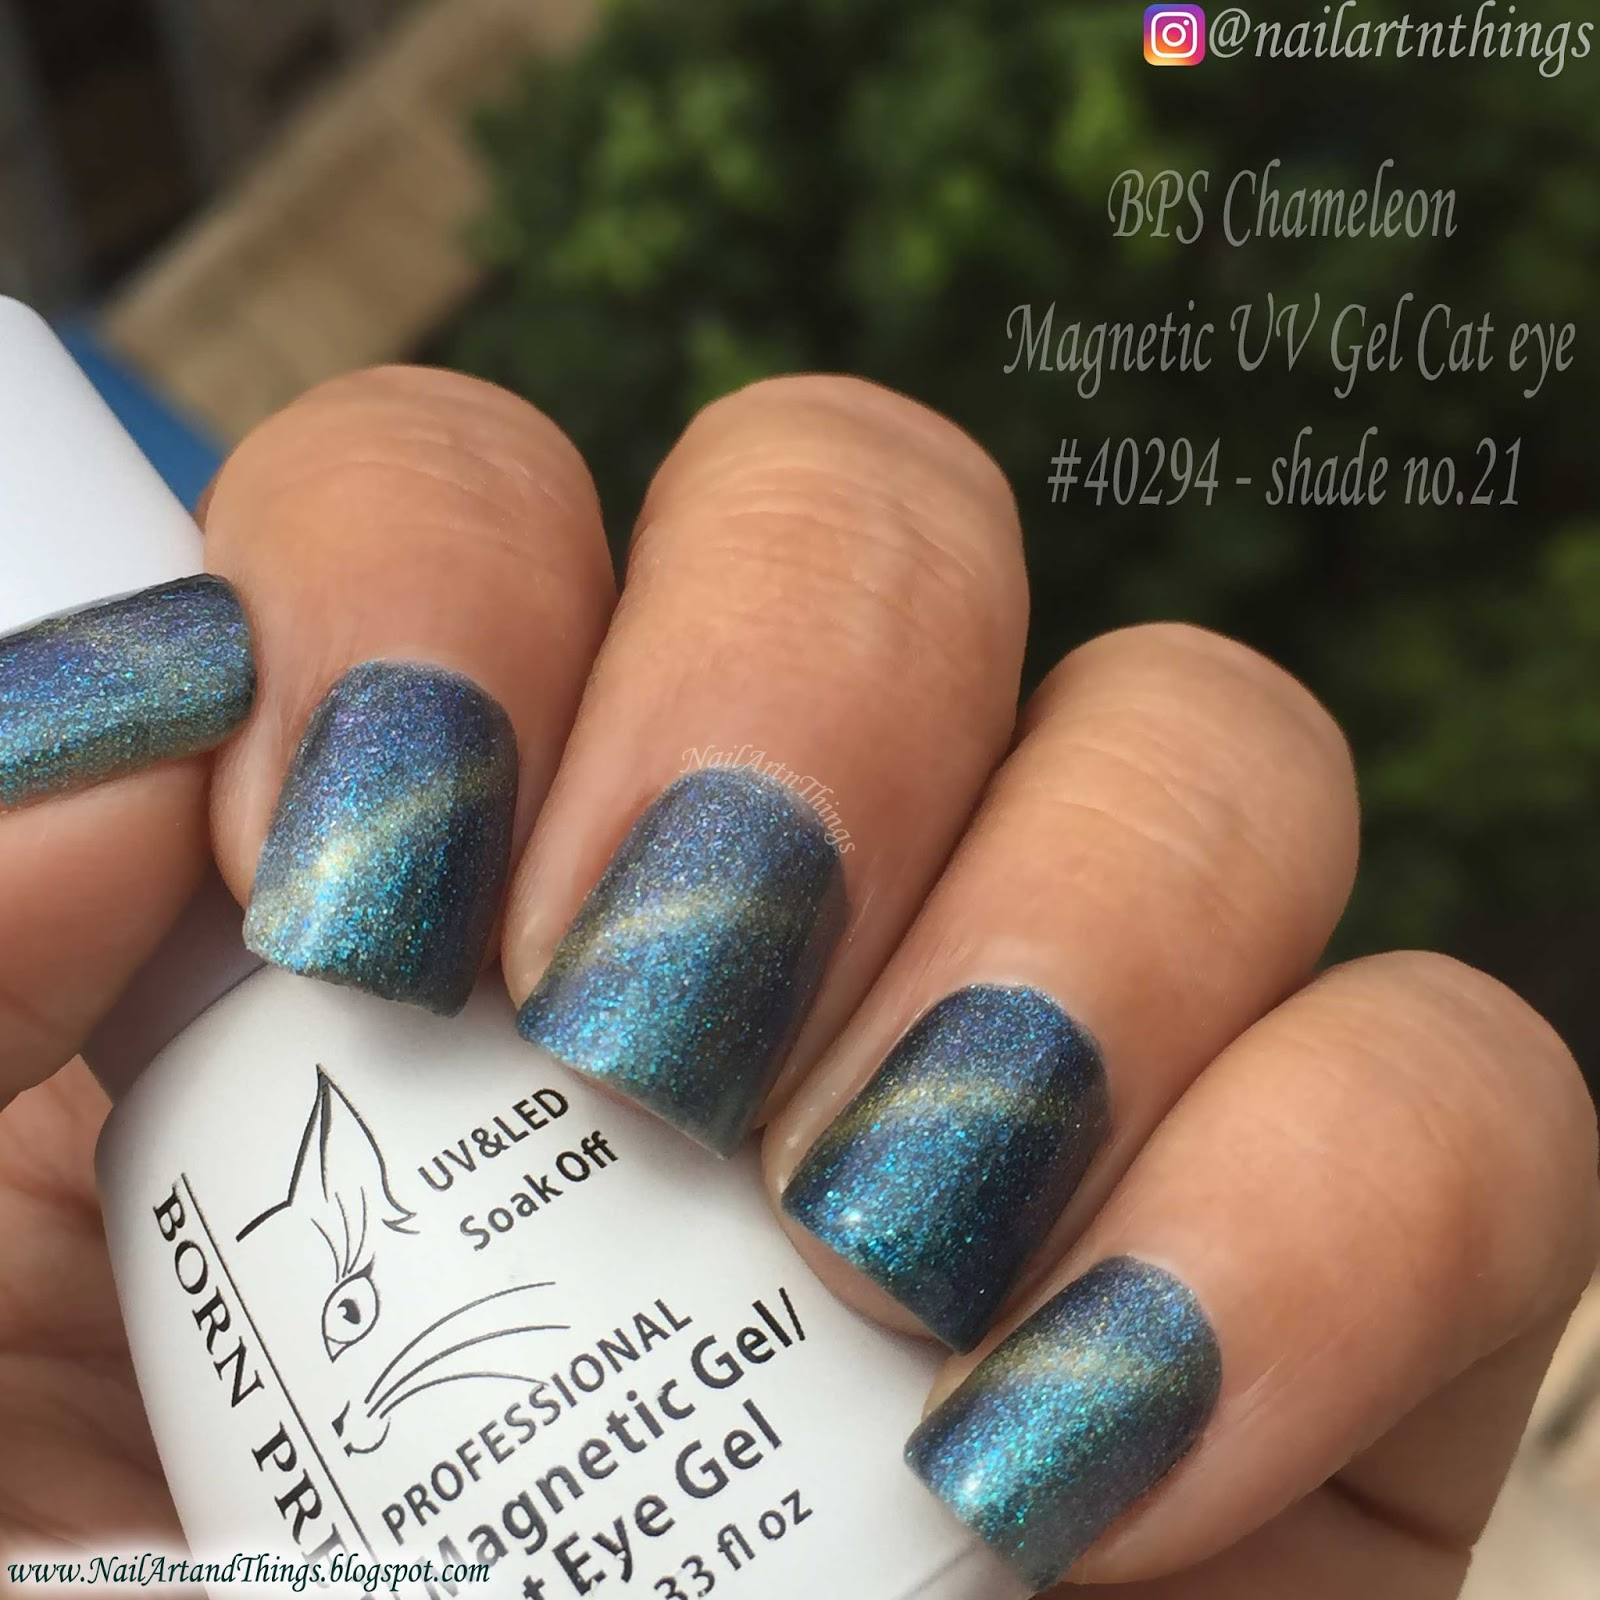 NailArt and Things: Swatch and Review: BPS Chameleon Magnetic UV Gel ...